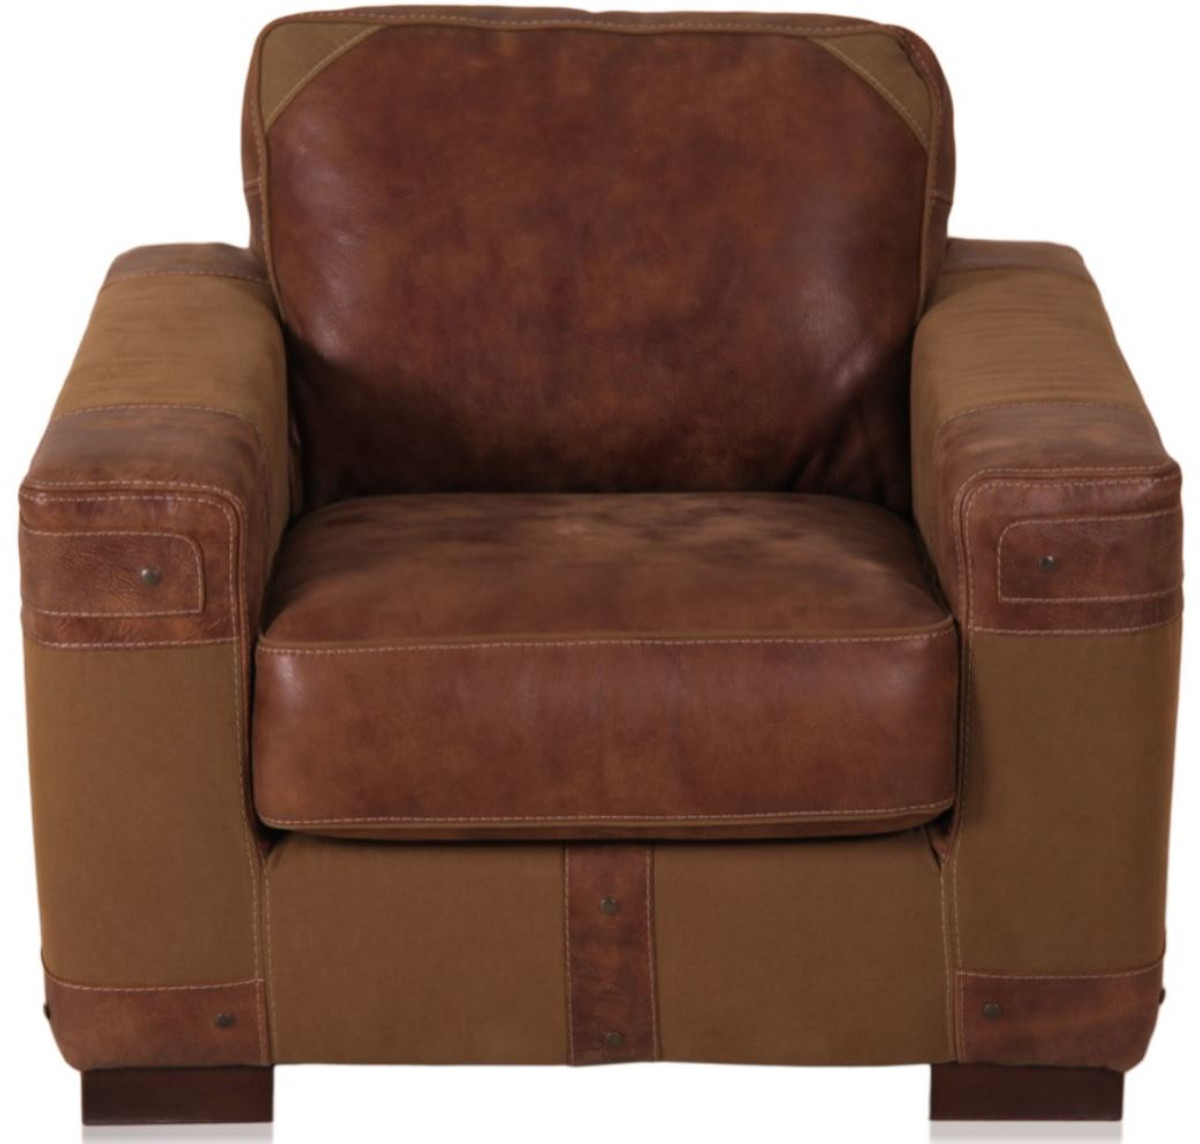 Casa Padrino Luxury Real Leather Armchair Brown 92 X H 93 Cm Chesterfield Furniture